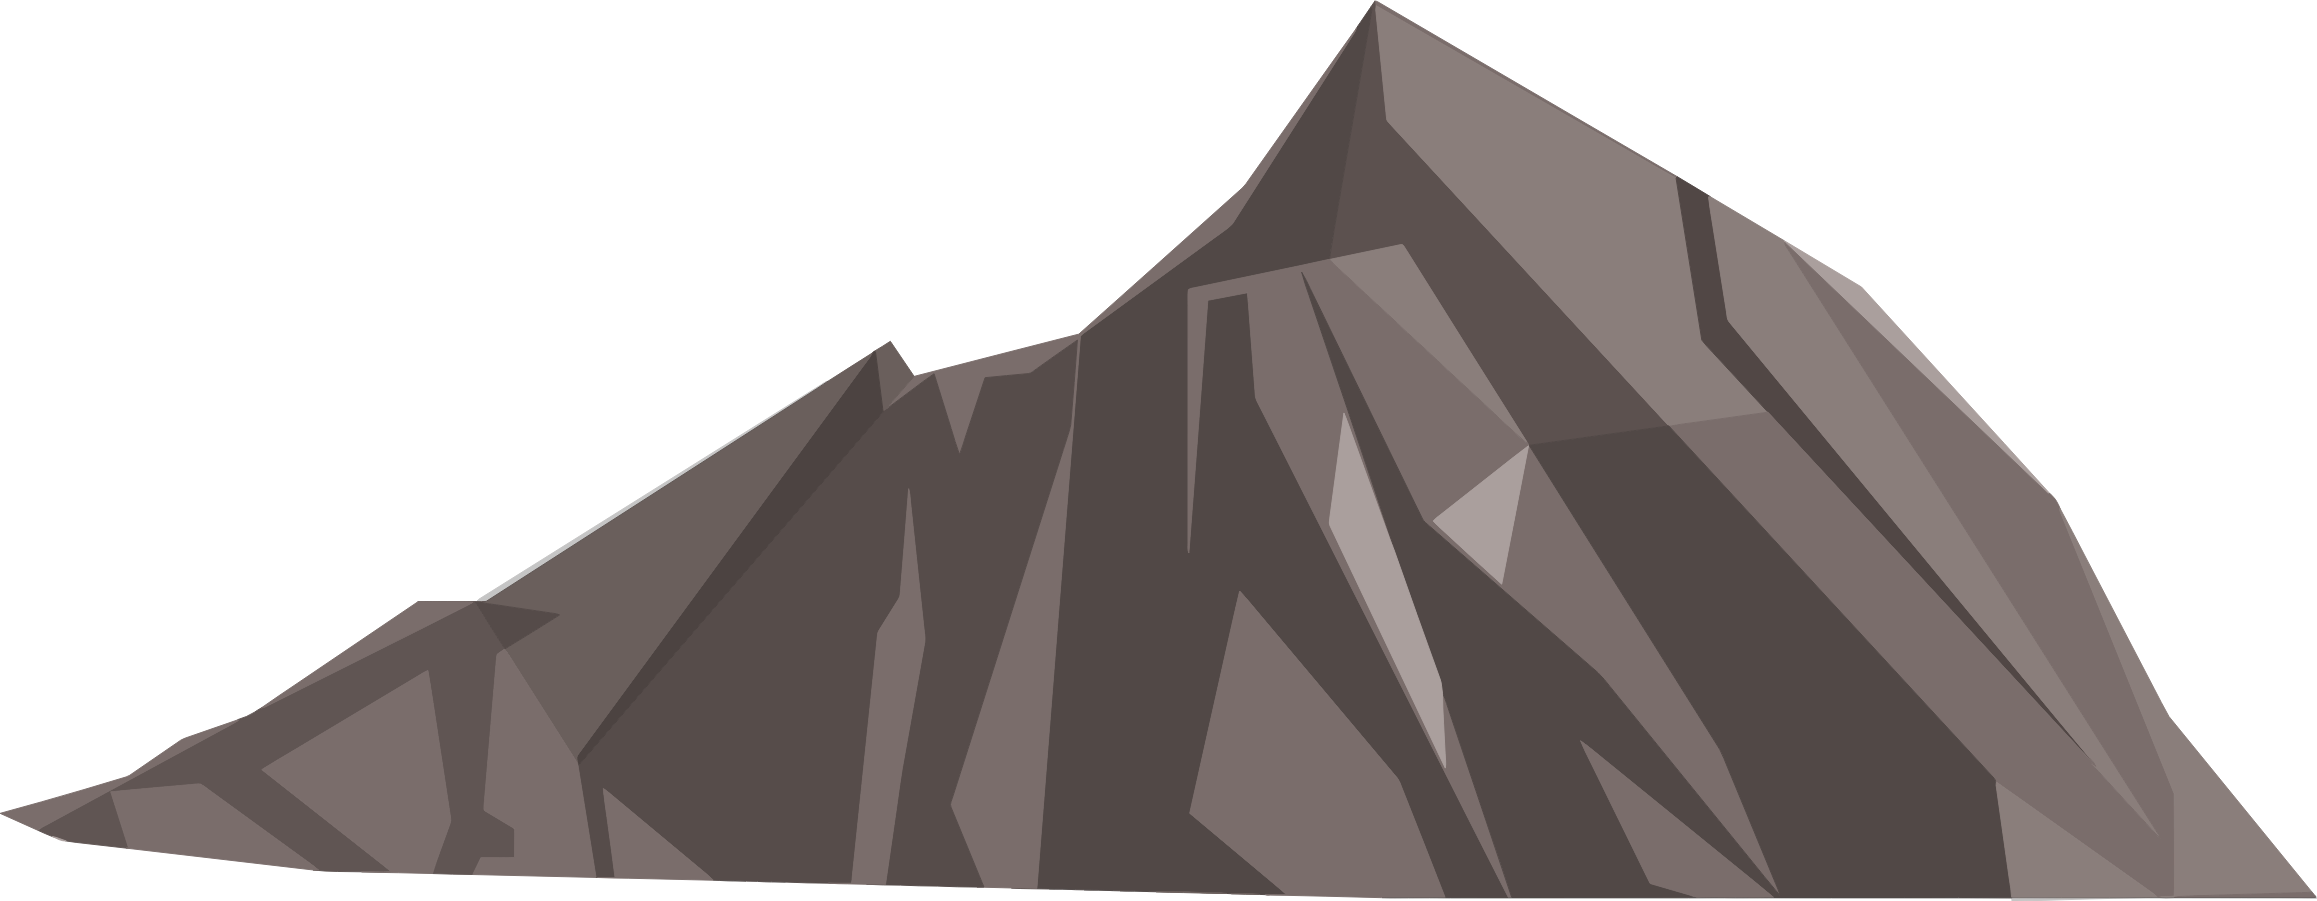 mountain png transparent images png only 11994